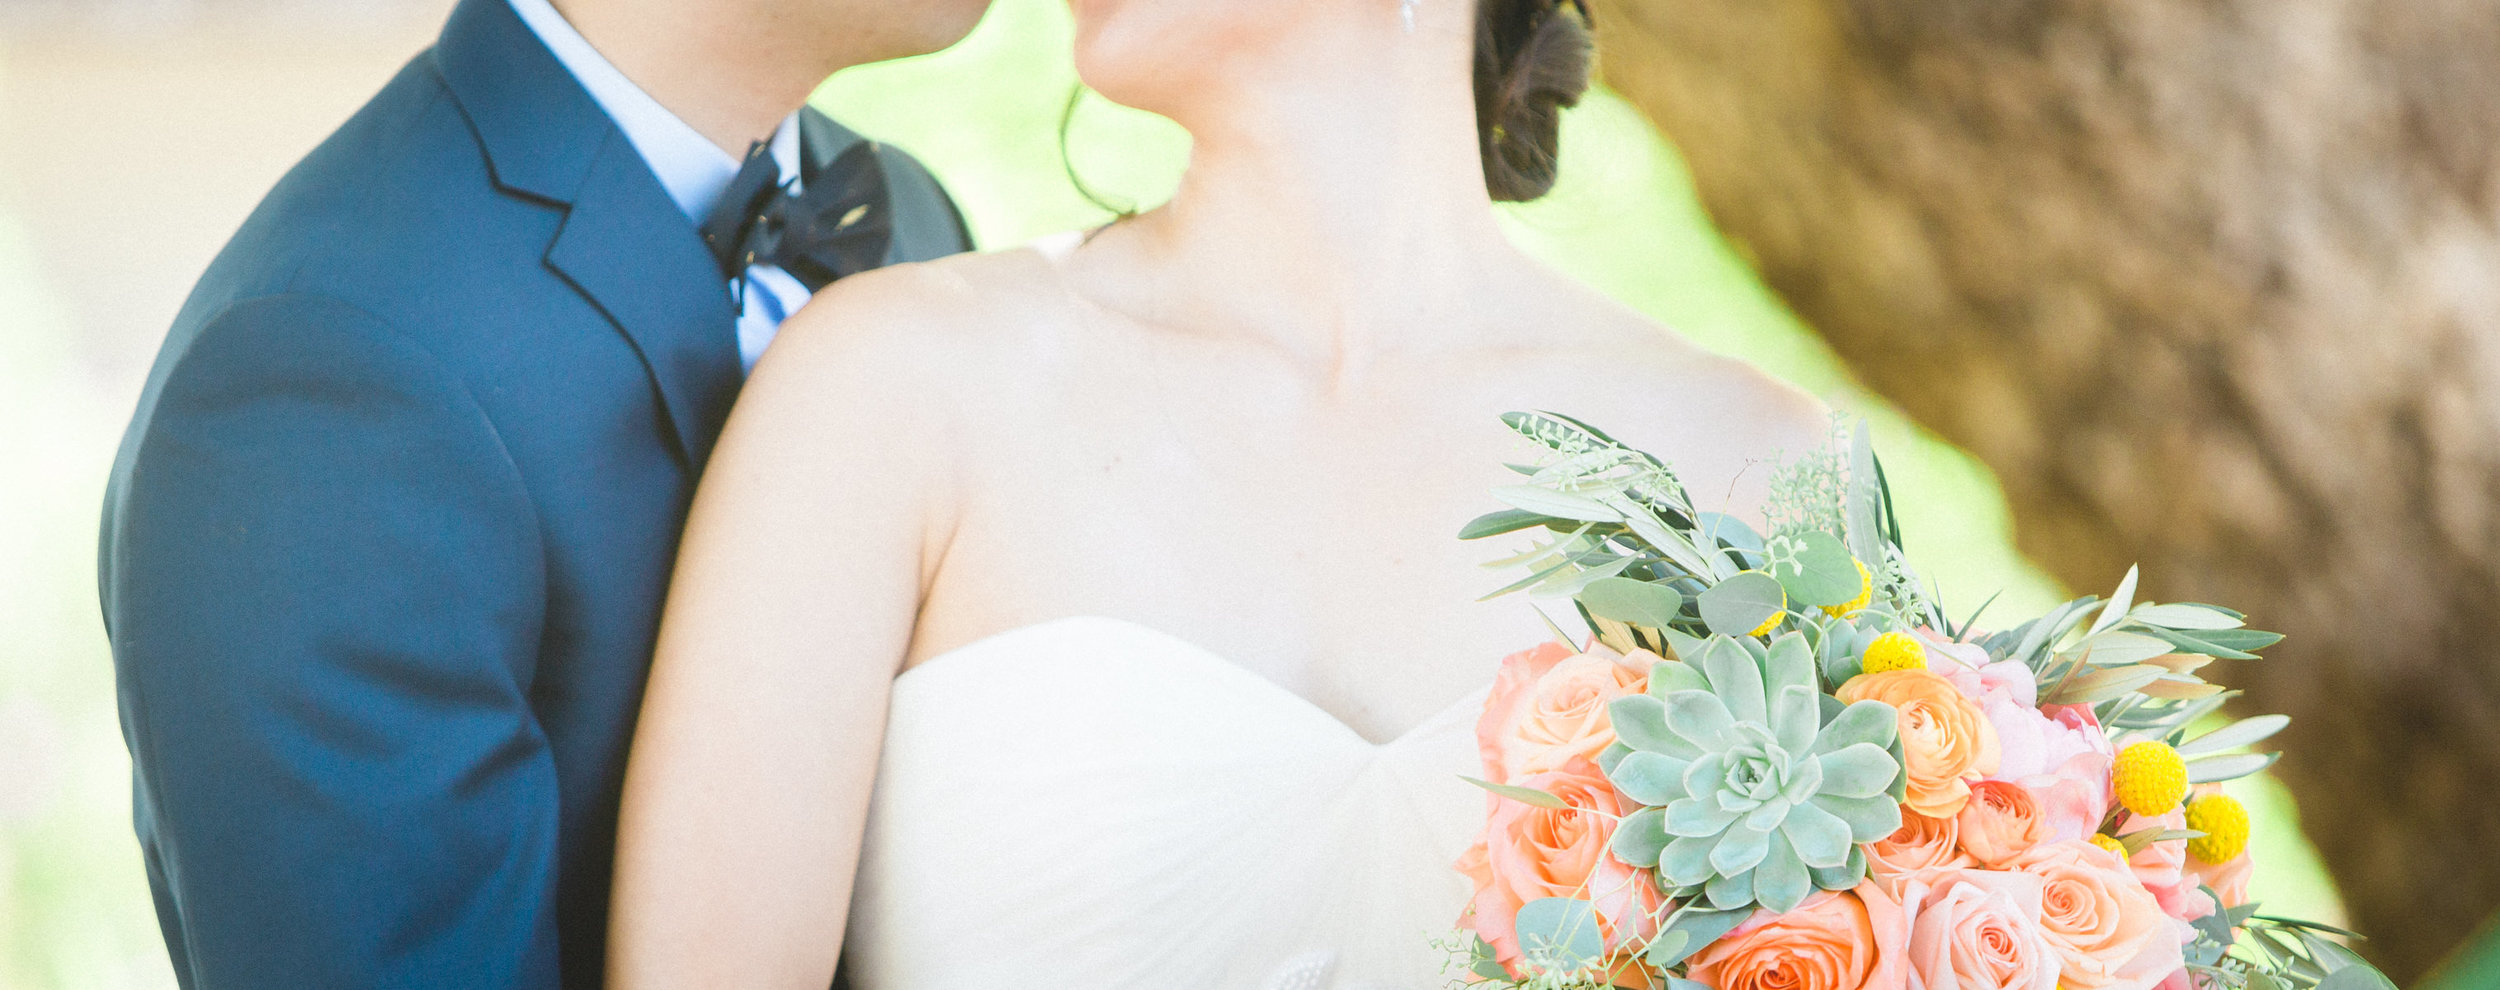 the-light-and-glass-wedding-engagement-photography-20160702-001-2.jpg